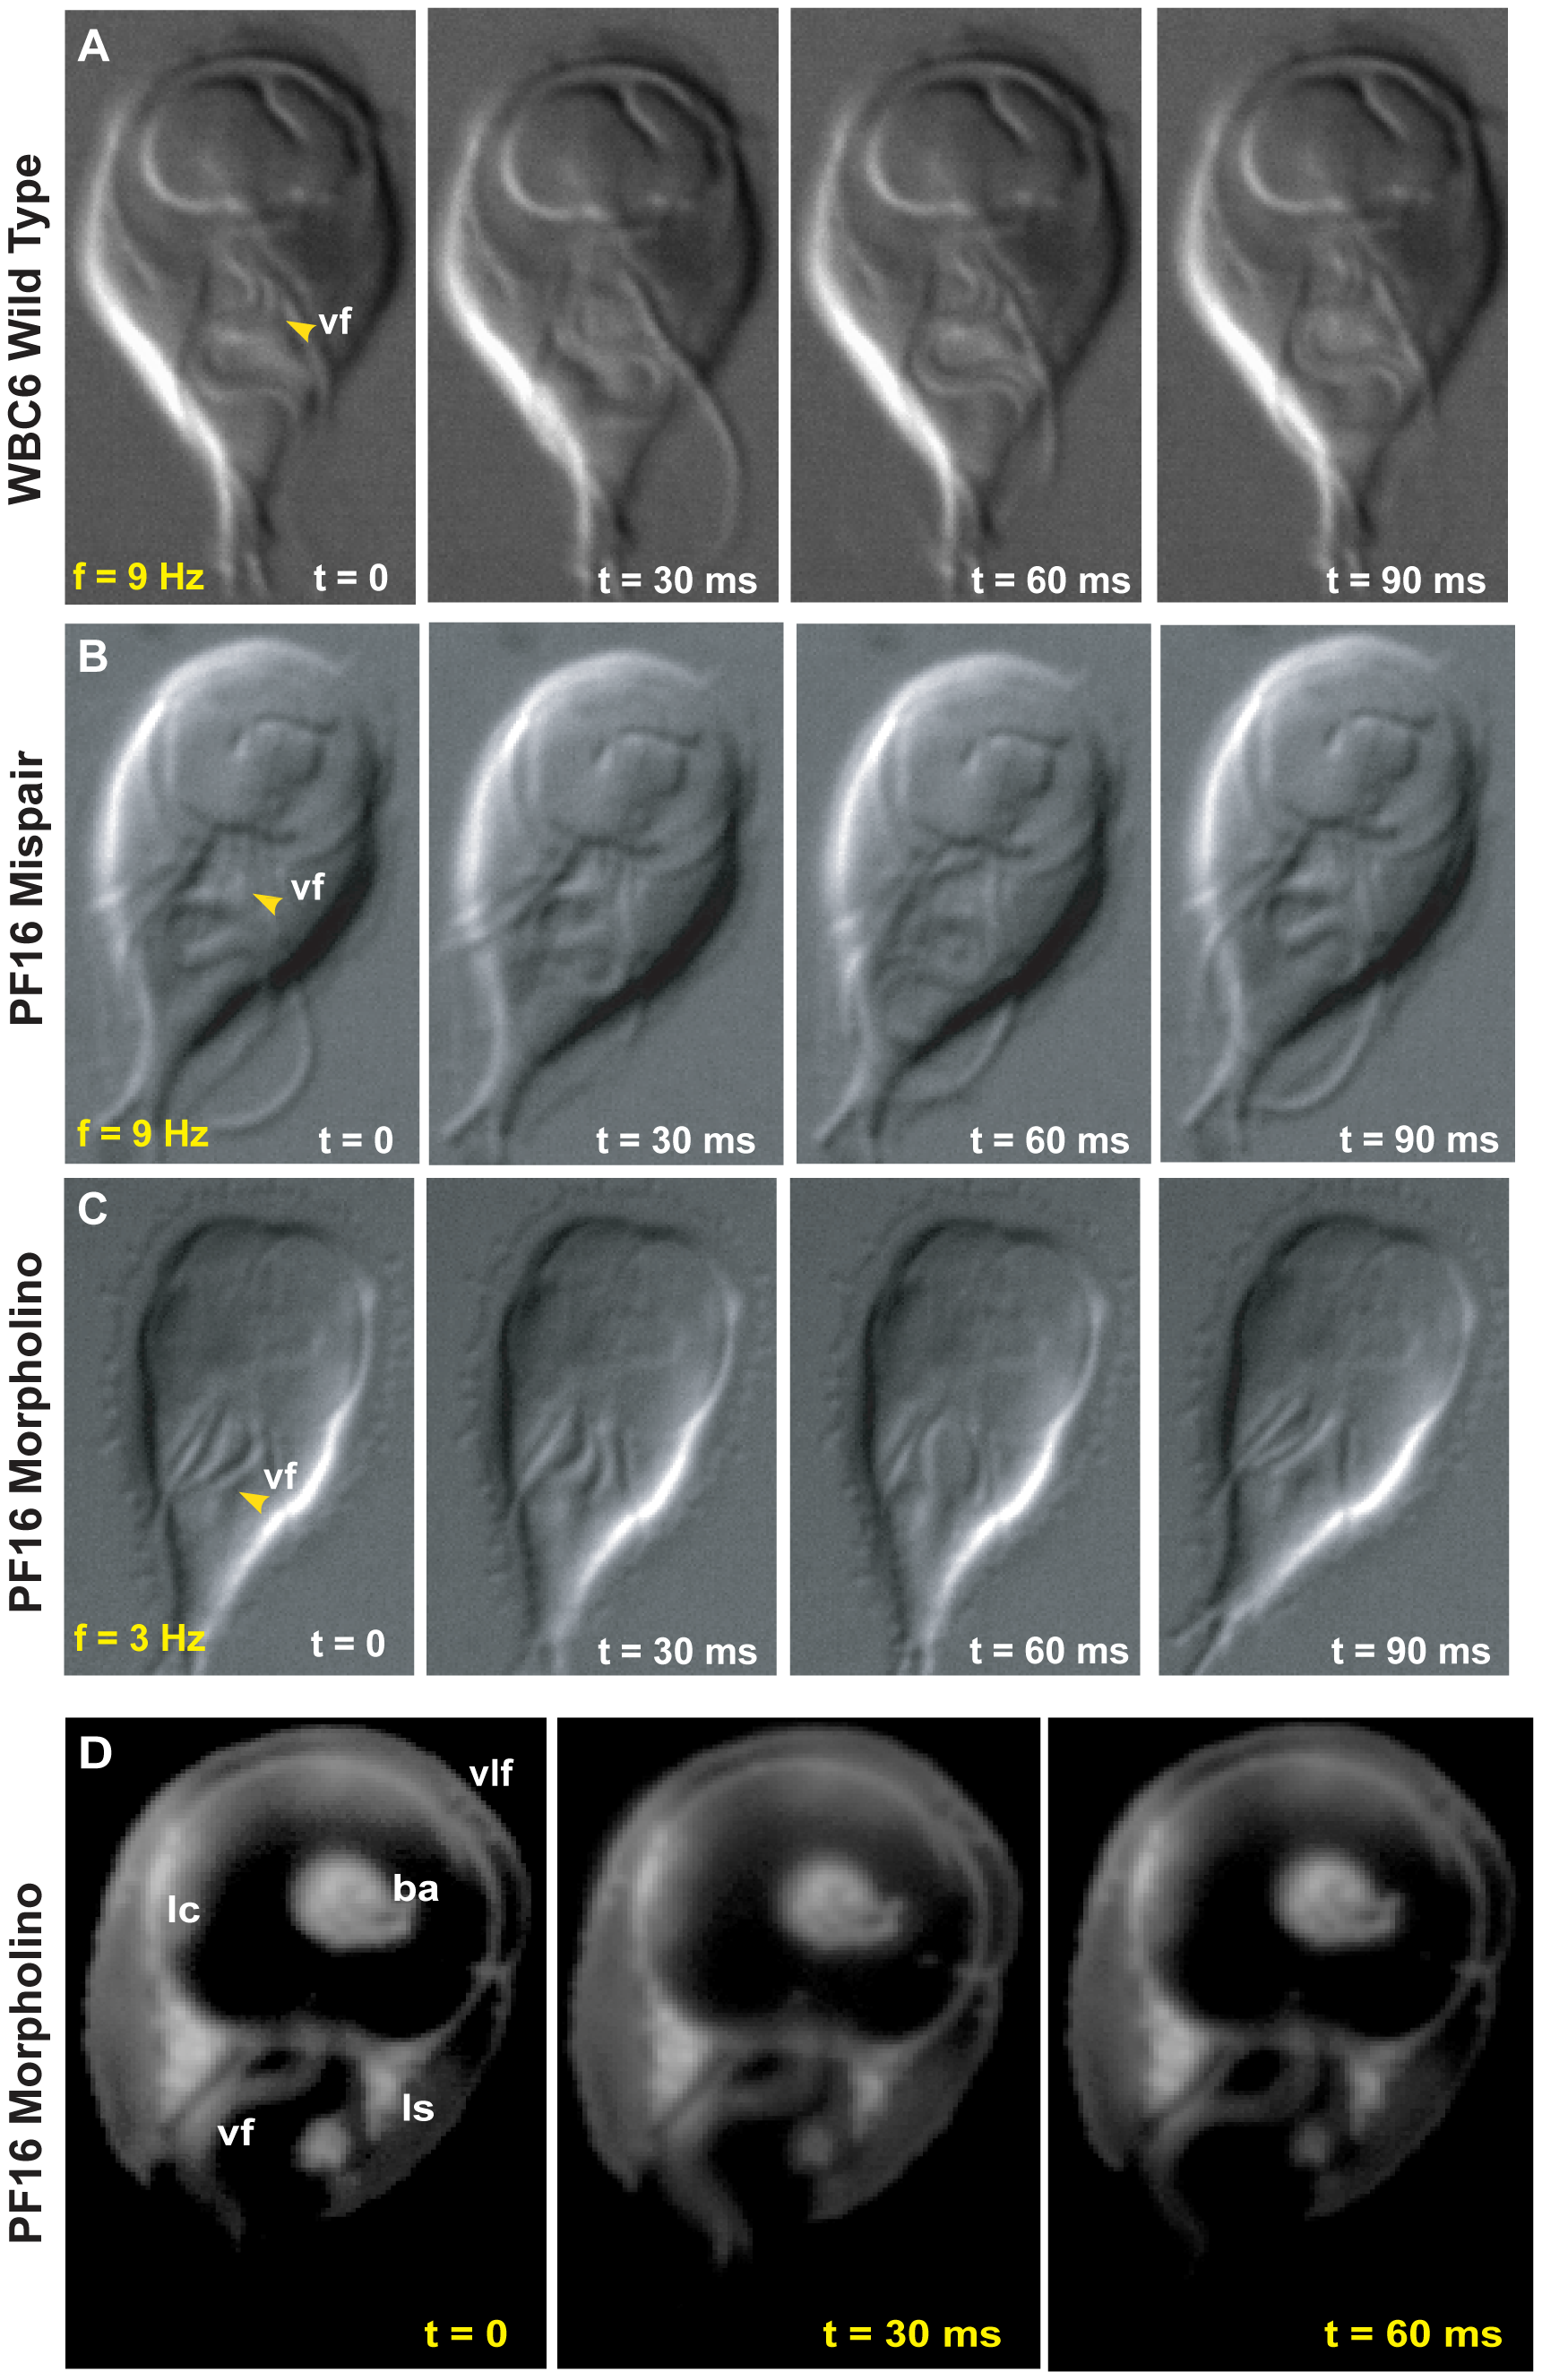 Morpholino knockdown of PF16 significantly reduces flagellar beat frequency but only mildly affects the ability to maintain attachment.